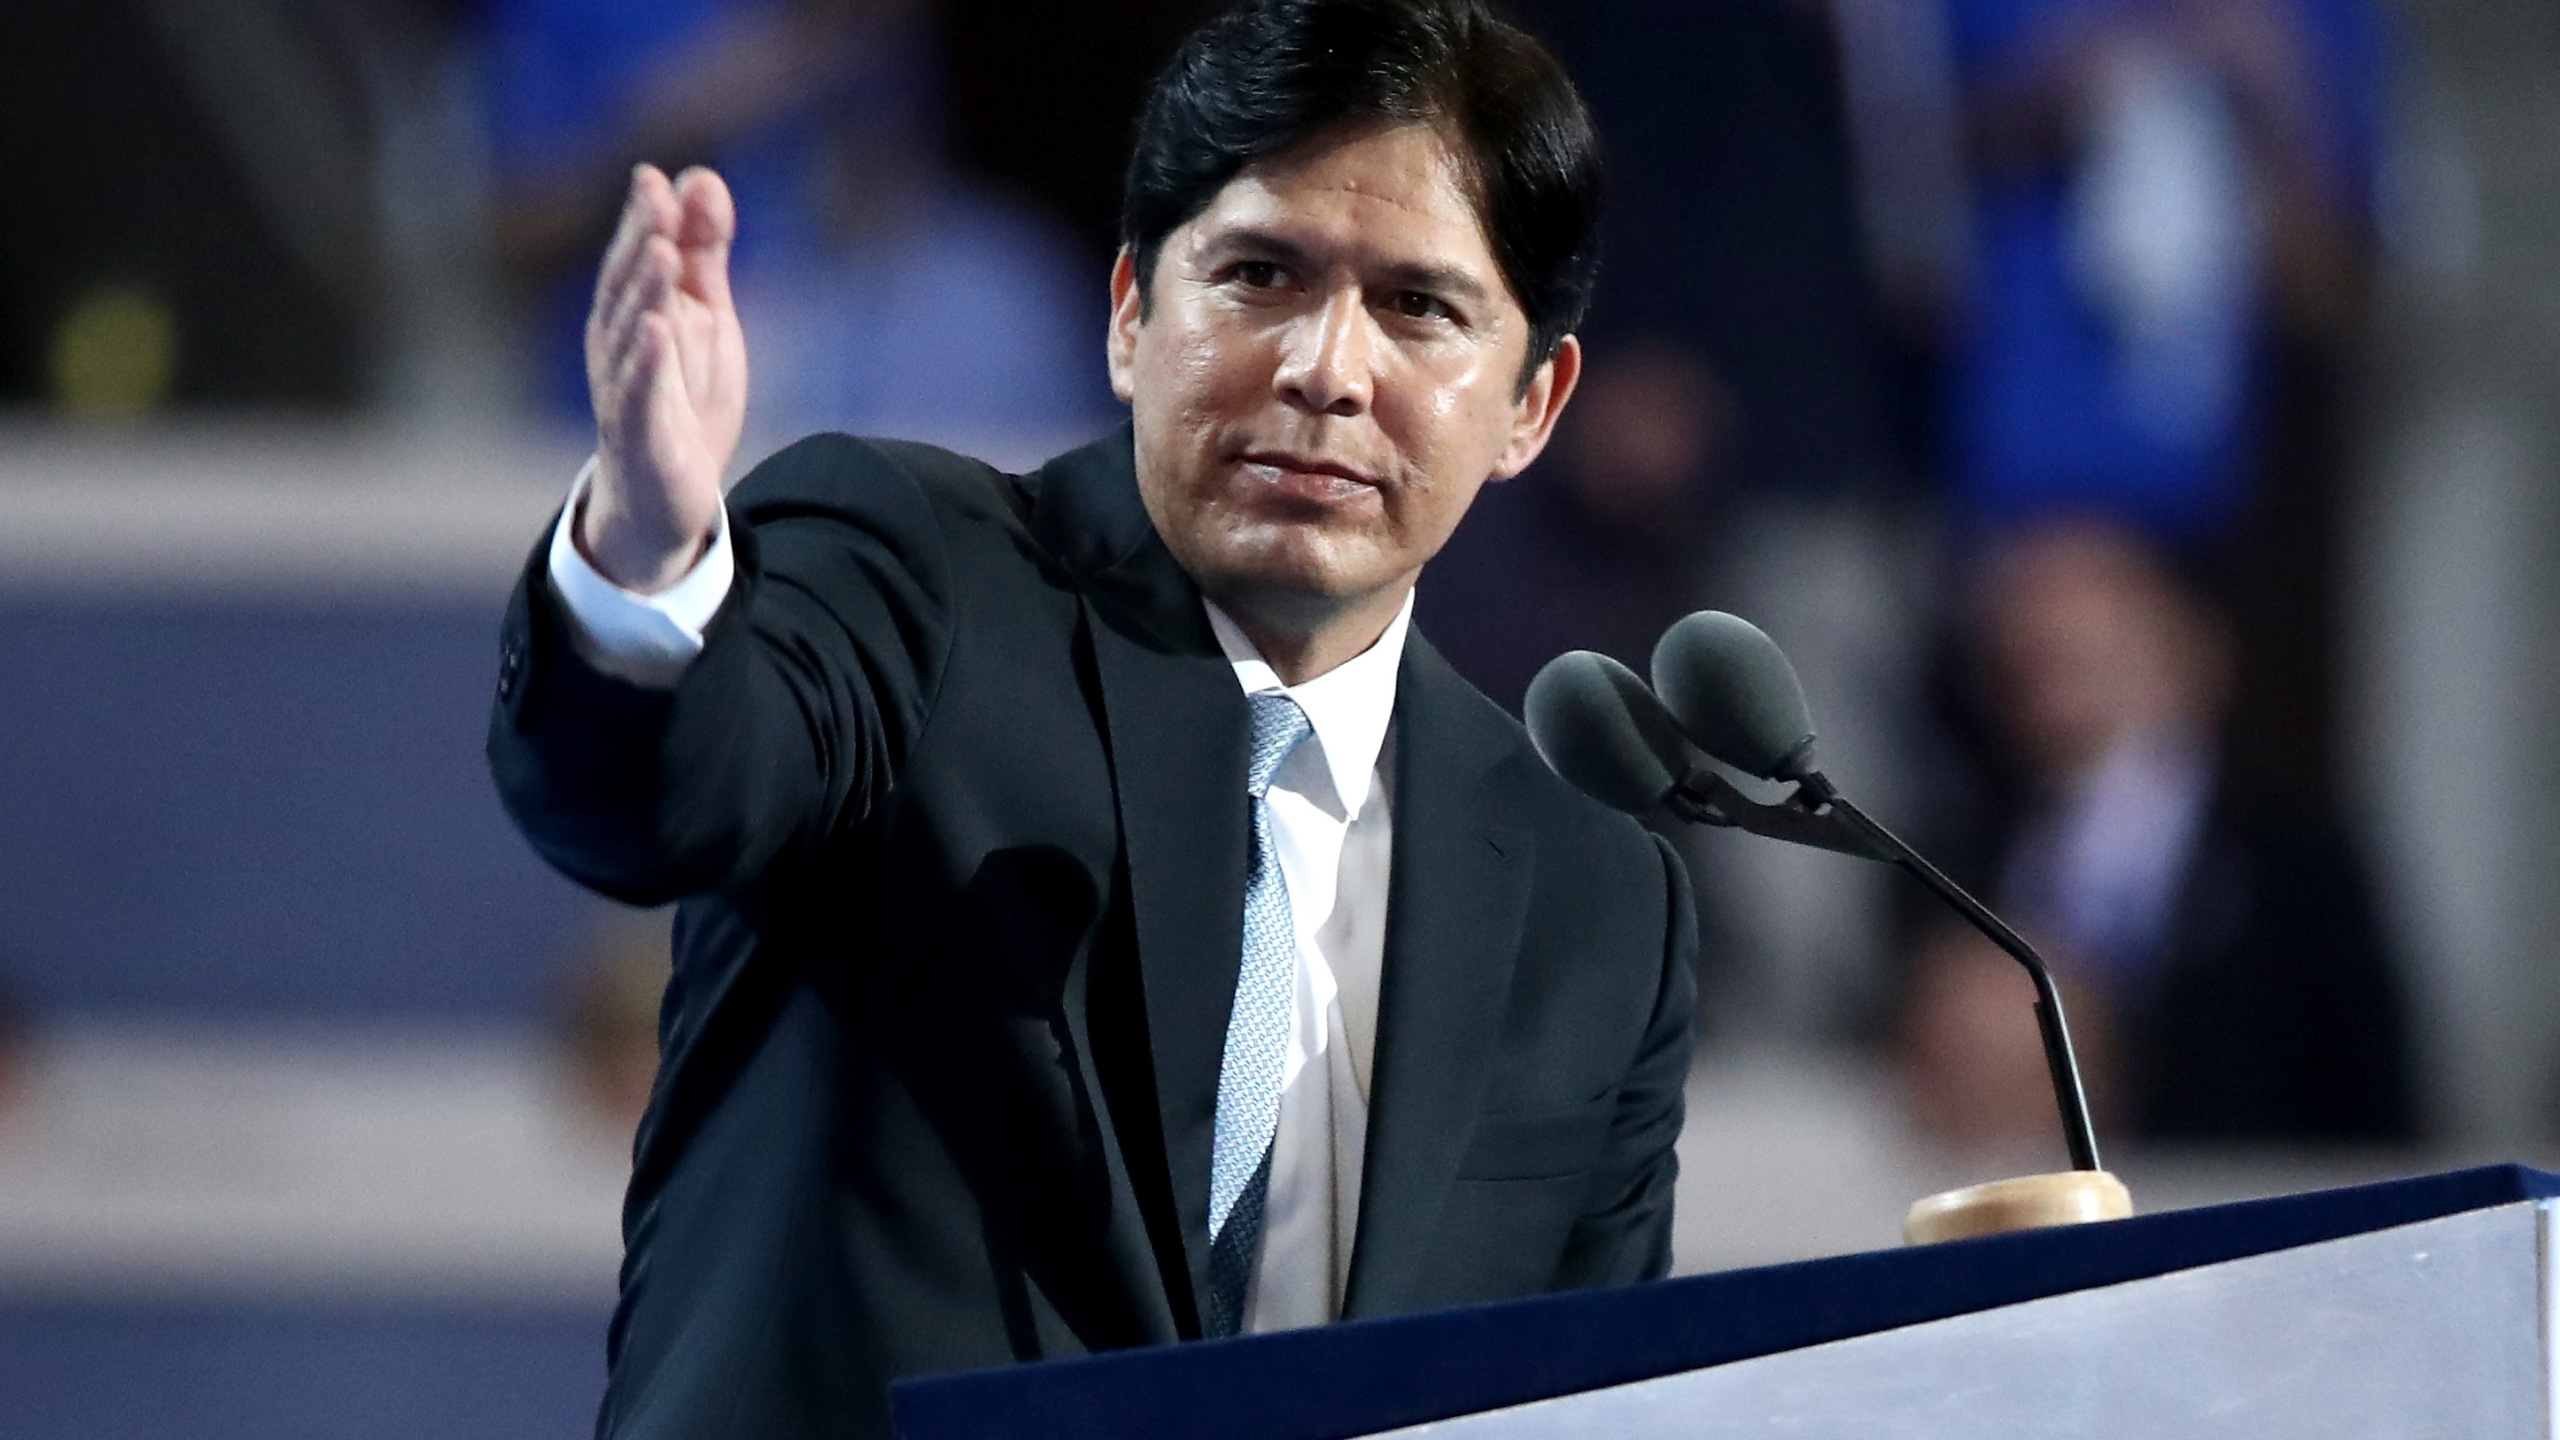 California State Sen. Kevin de Leon delivers a speech on the first day of the Democratic National Convention at the Wells Fargo Center, July 25, 2016, in Philadelphia. (Credit: Jessica Kourkounis/Getty Images)